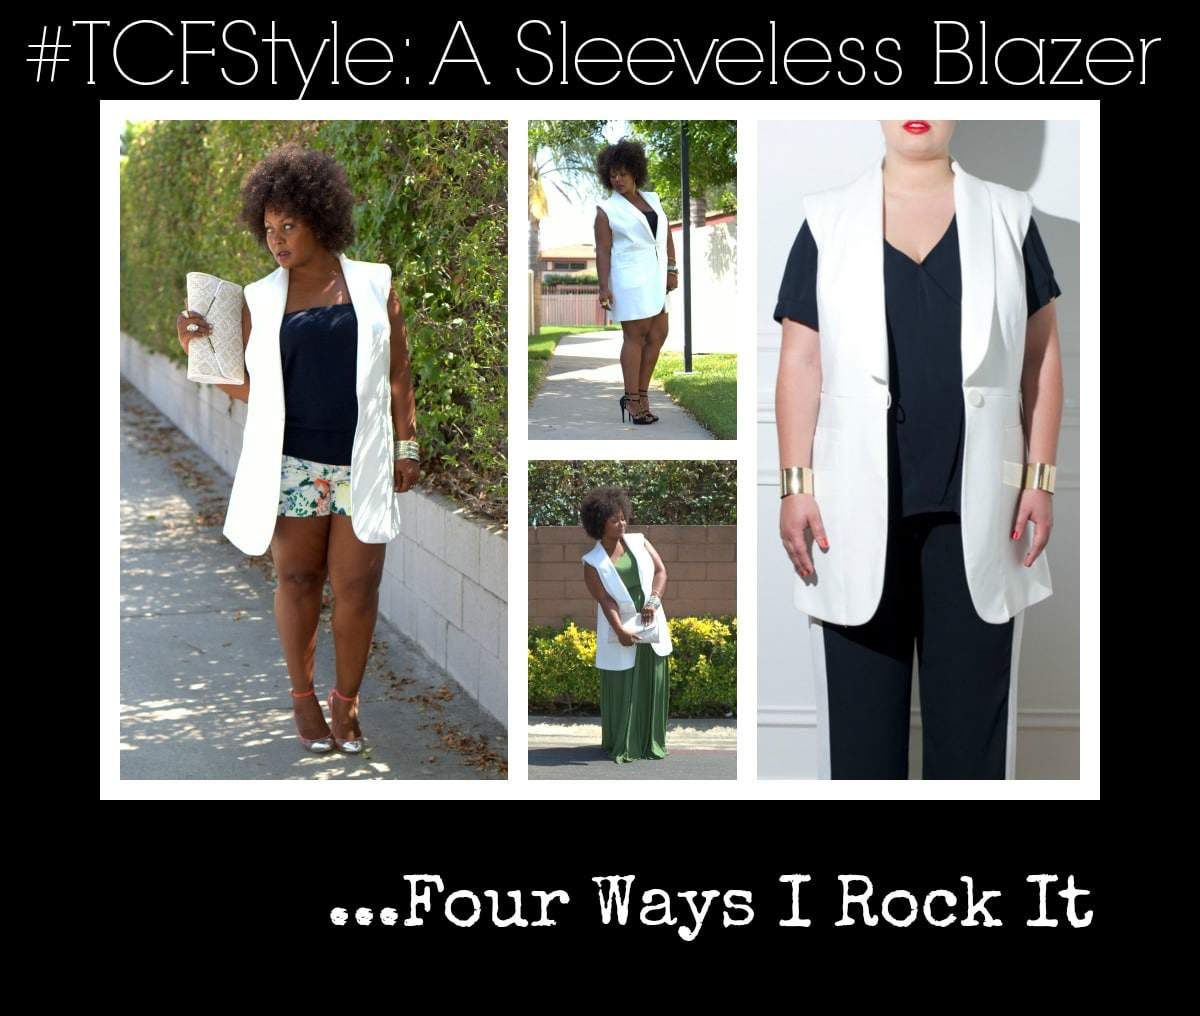 #TCFStyle: This Sleeveless Blazer Gives Me Life and the Four Ways to Rock It!